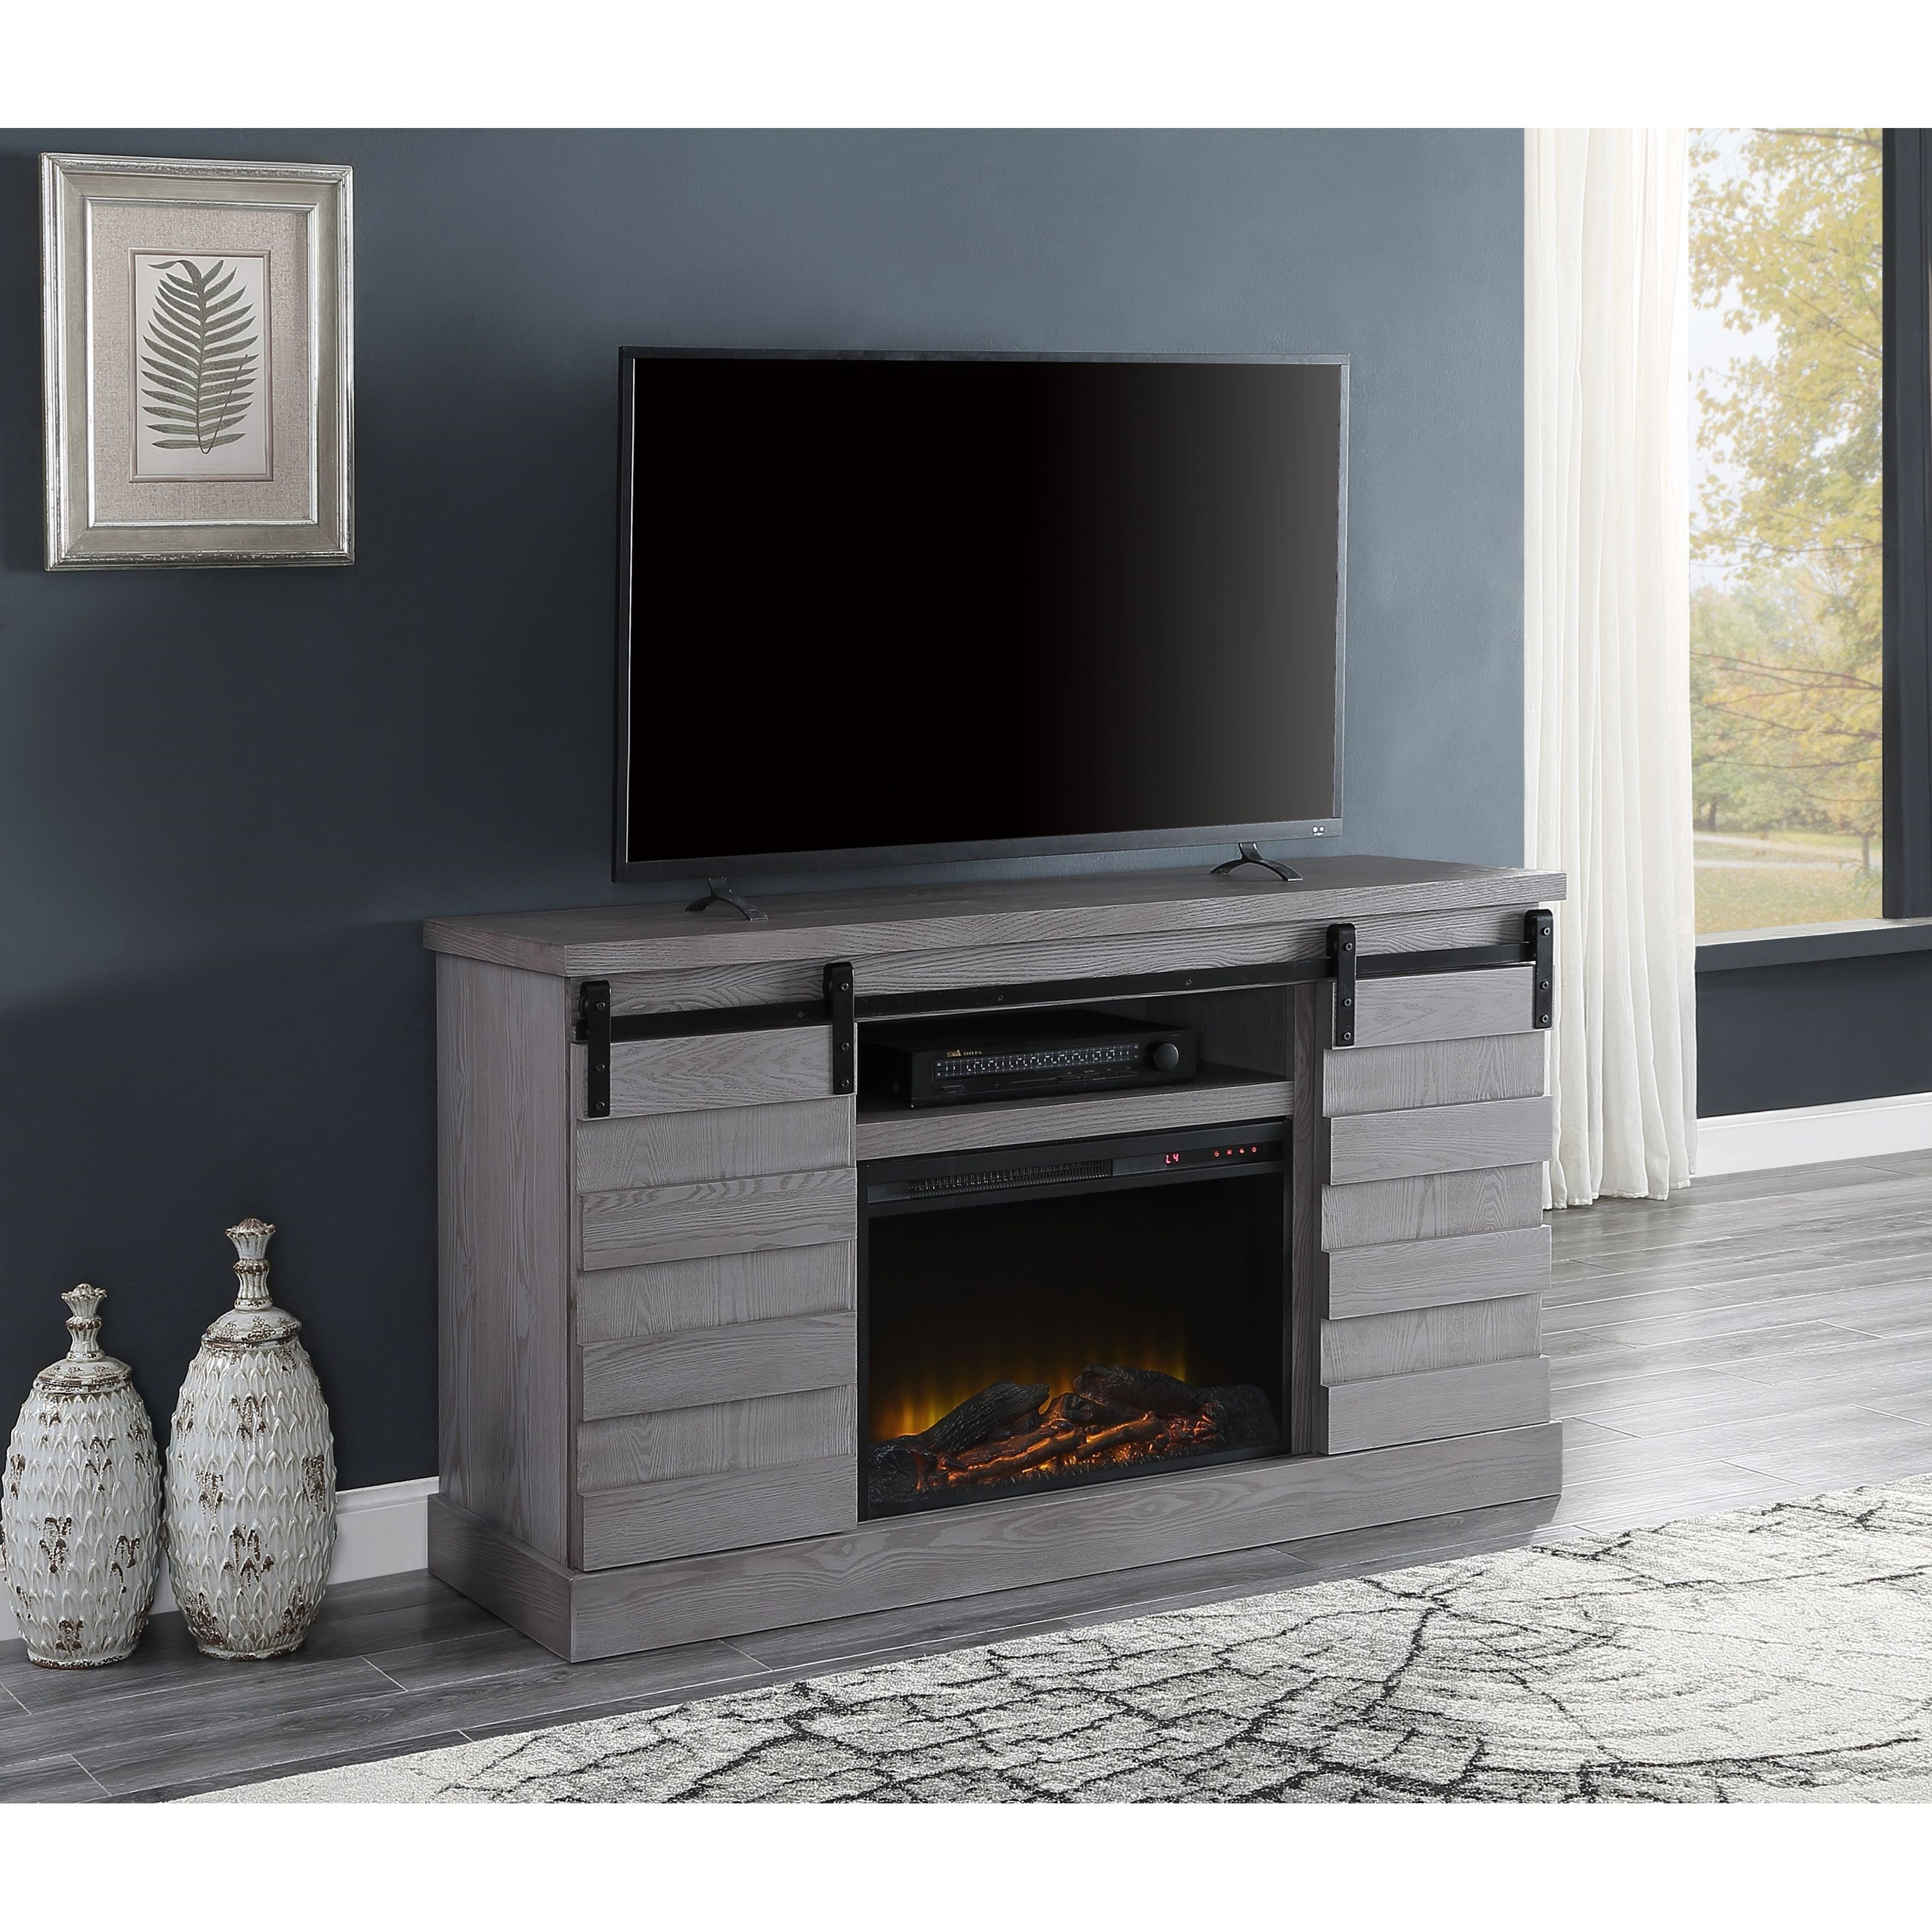 Amrita TV Stand with LED Fireplace by Acme Furniture at Carolina Direct